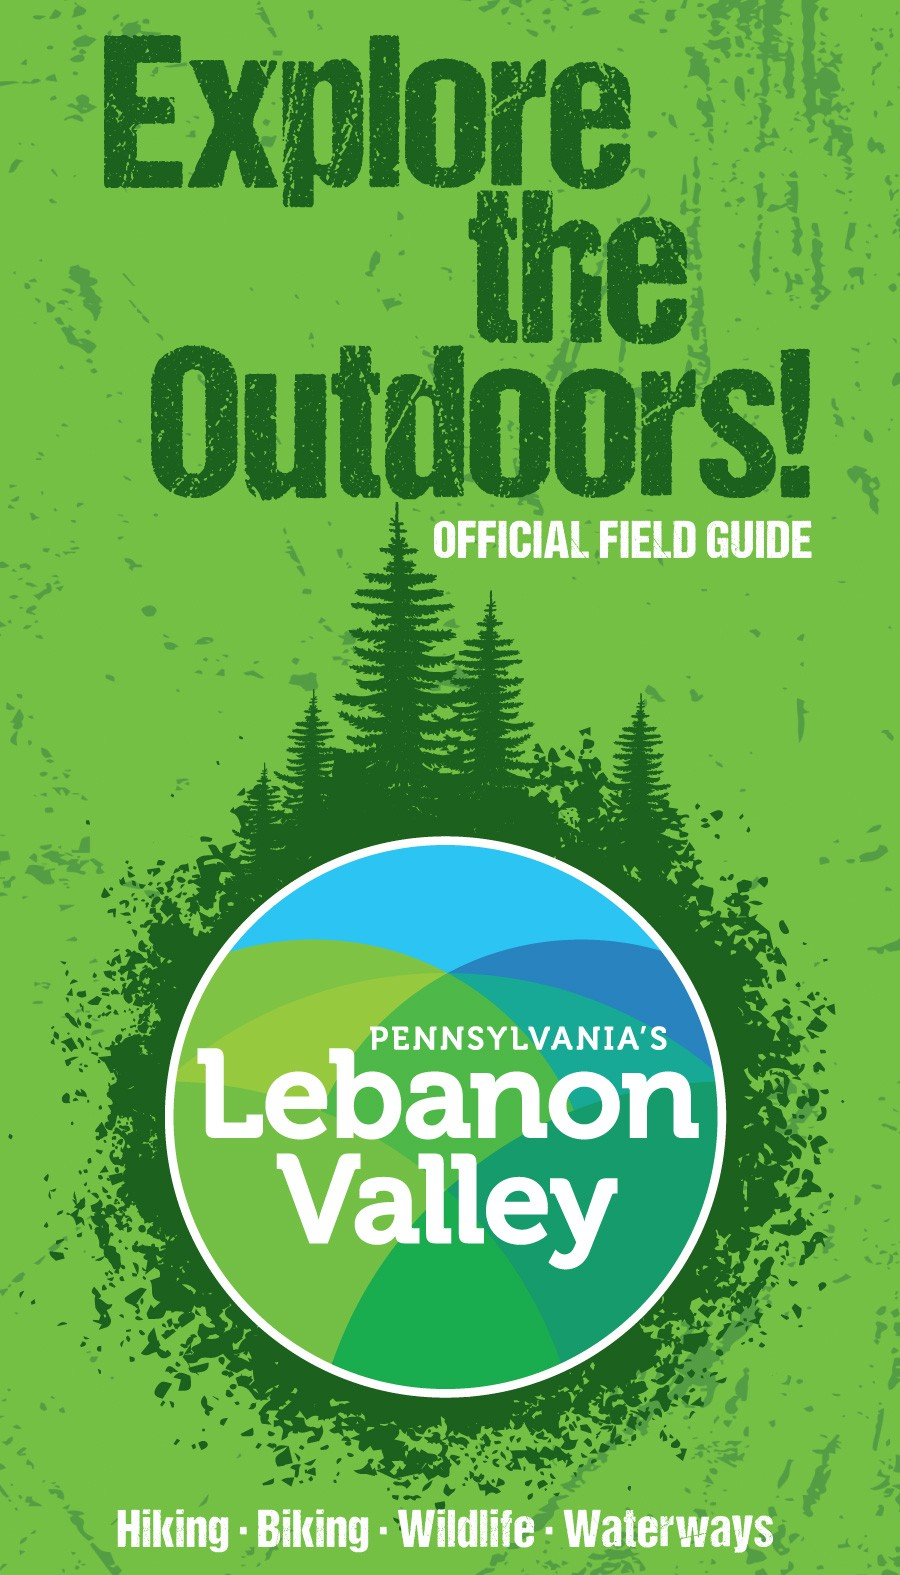 Offical Field Guide to the Lebanon Valley